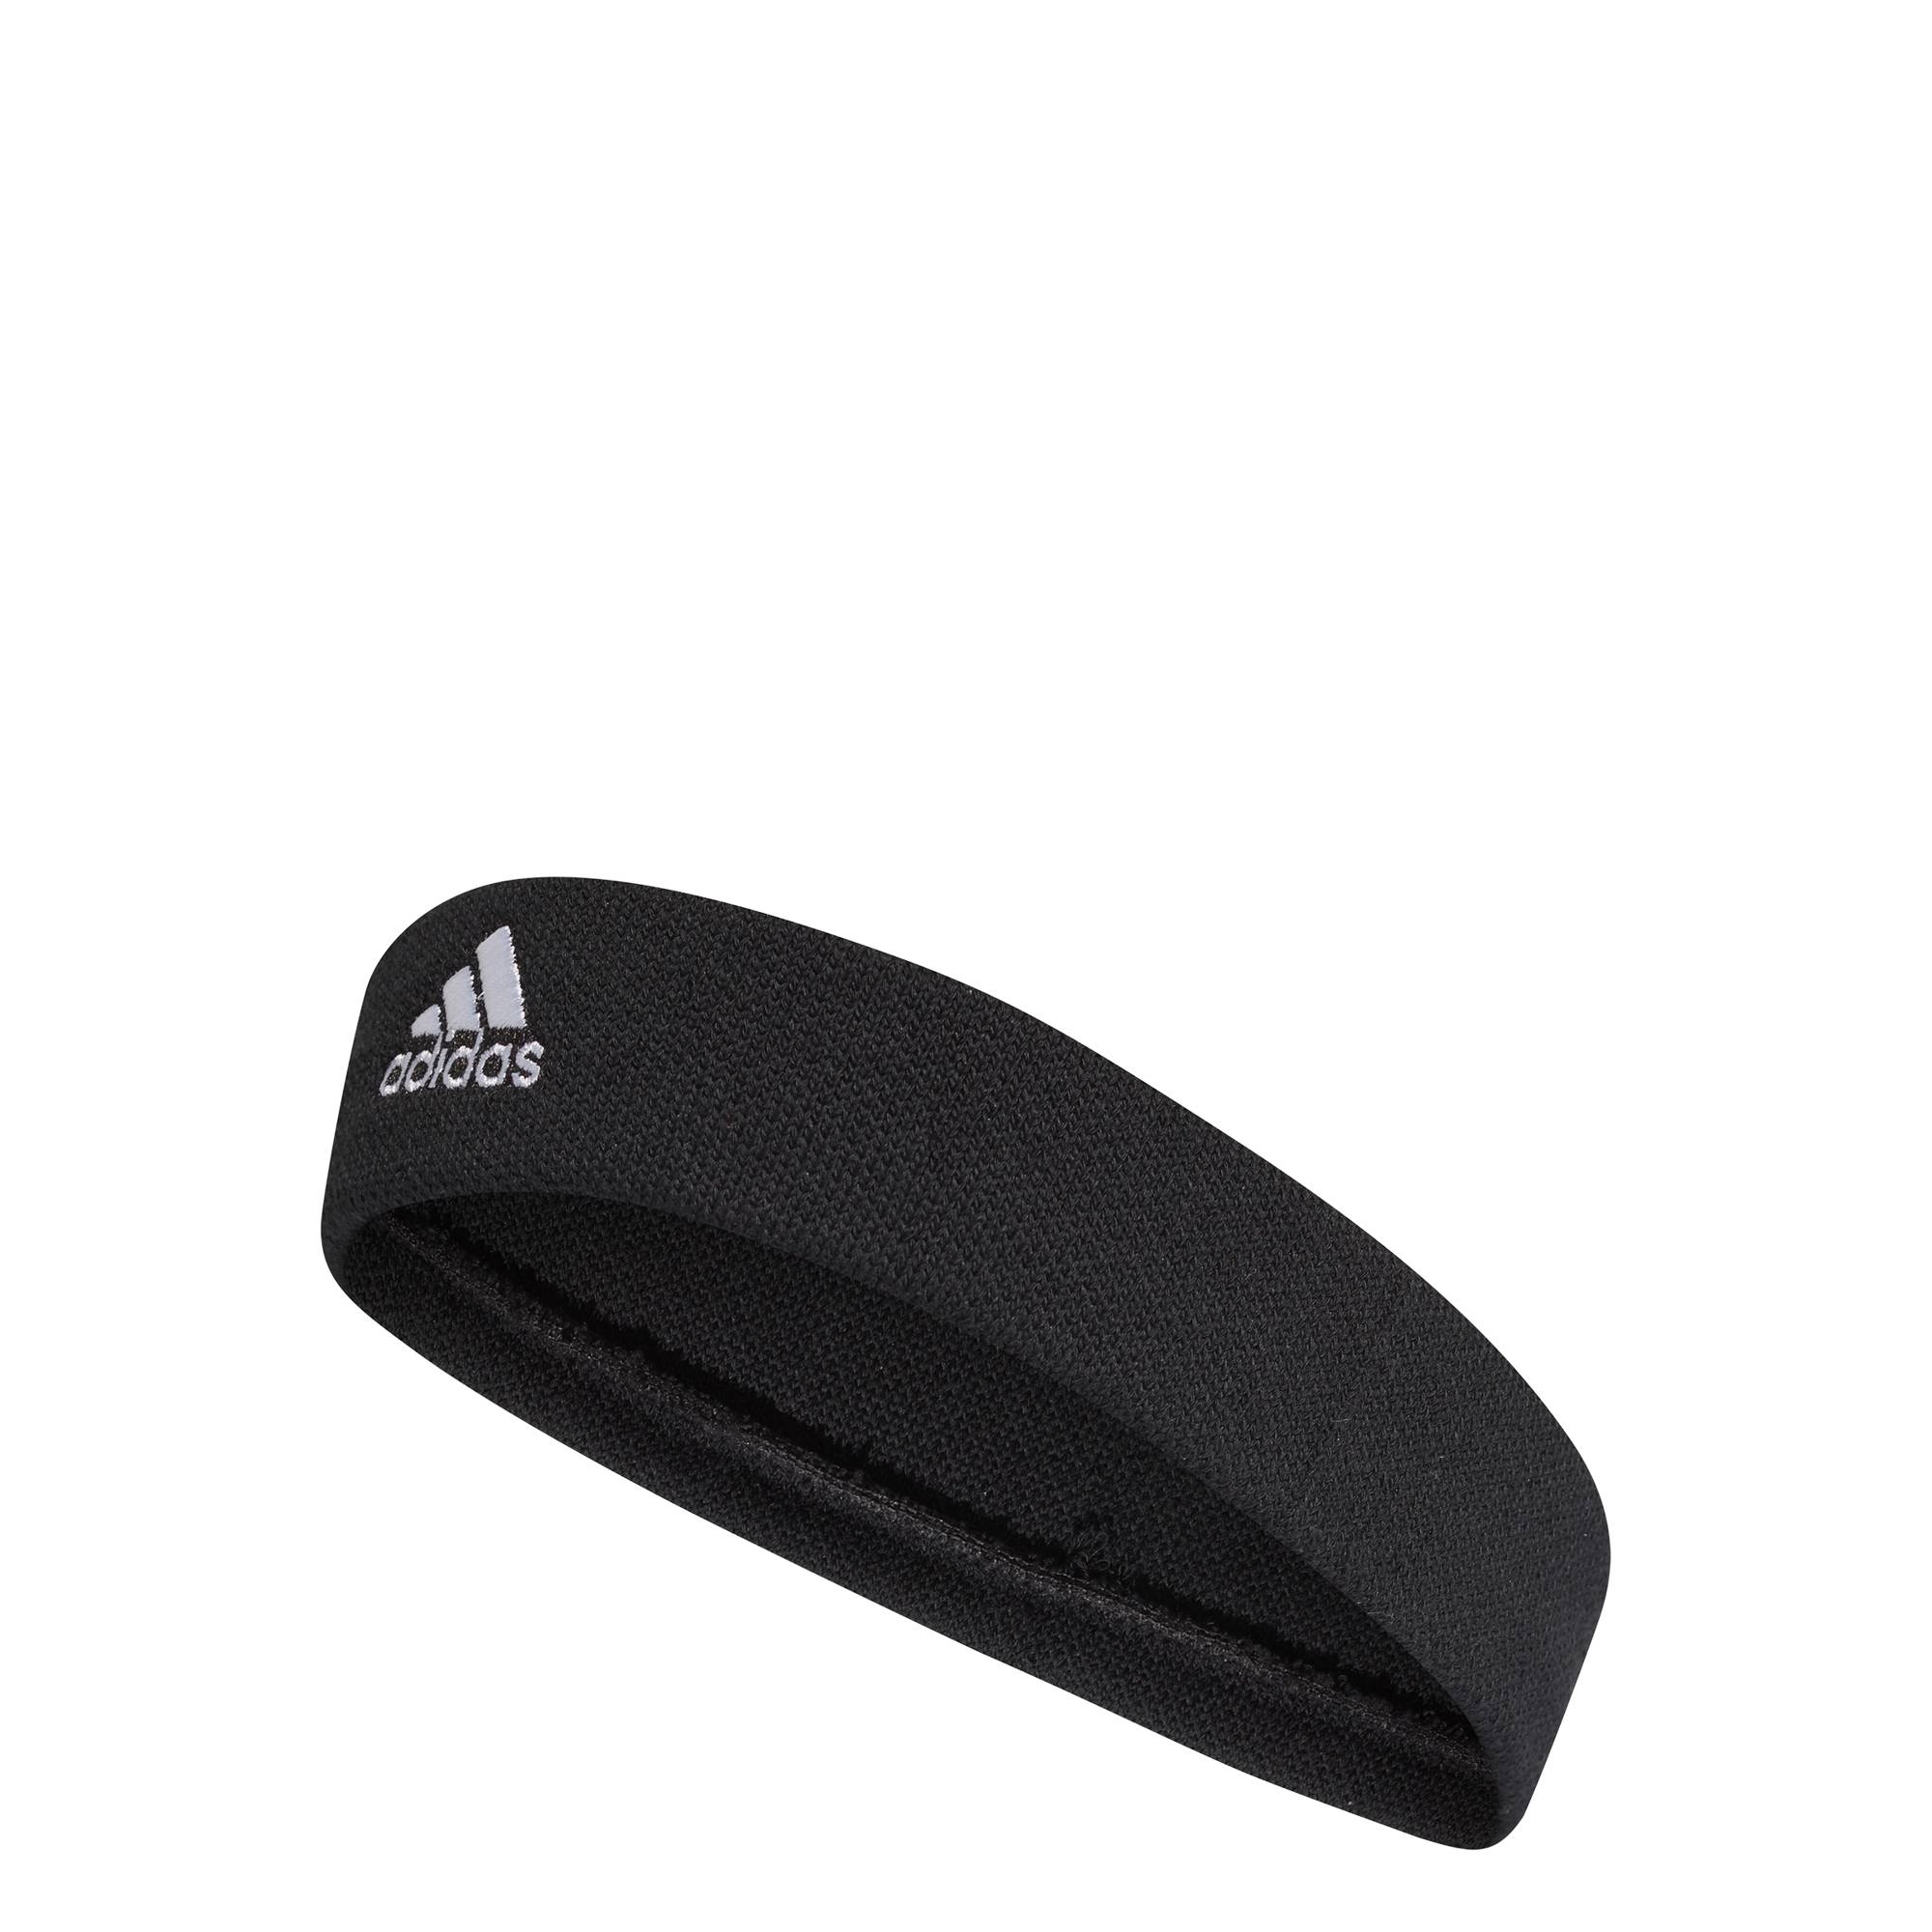 Adidas Hairband Training 3 Pack Headband Running Tennis Workout Fashion EA0388